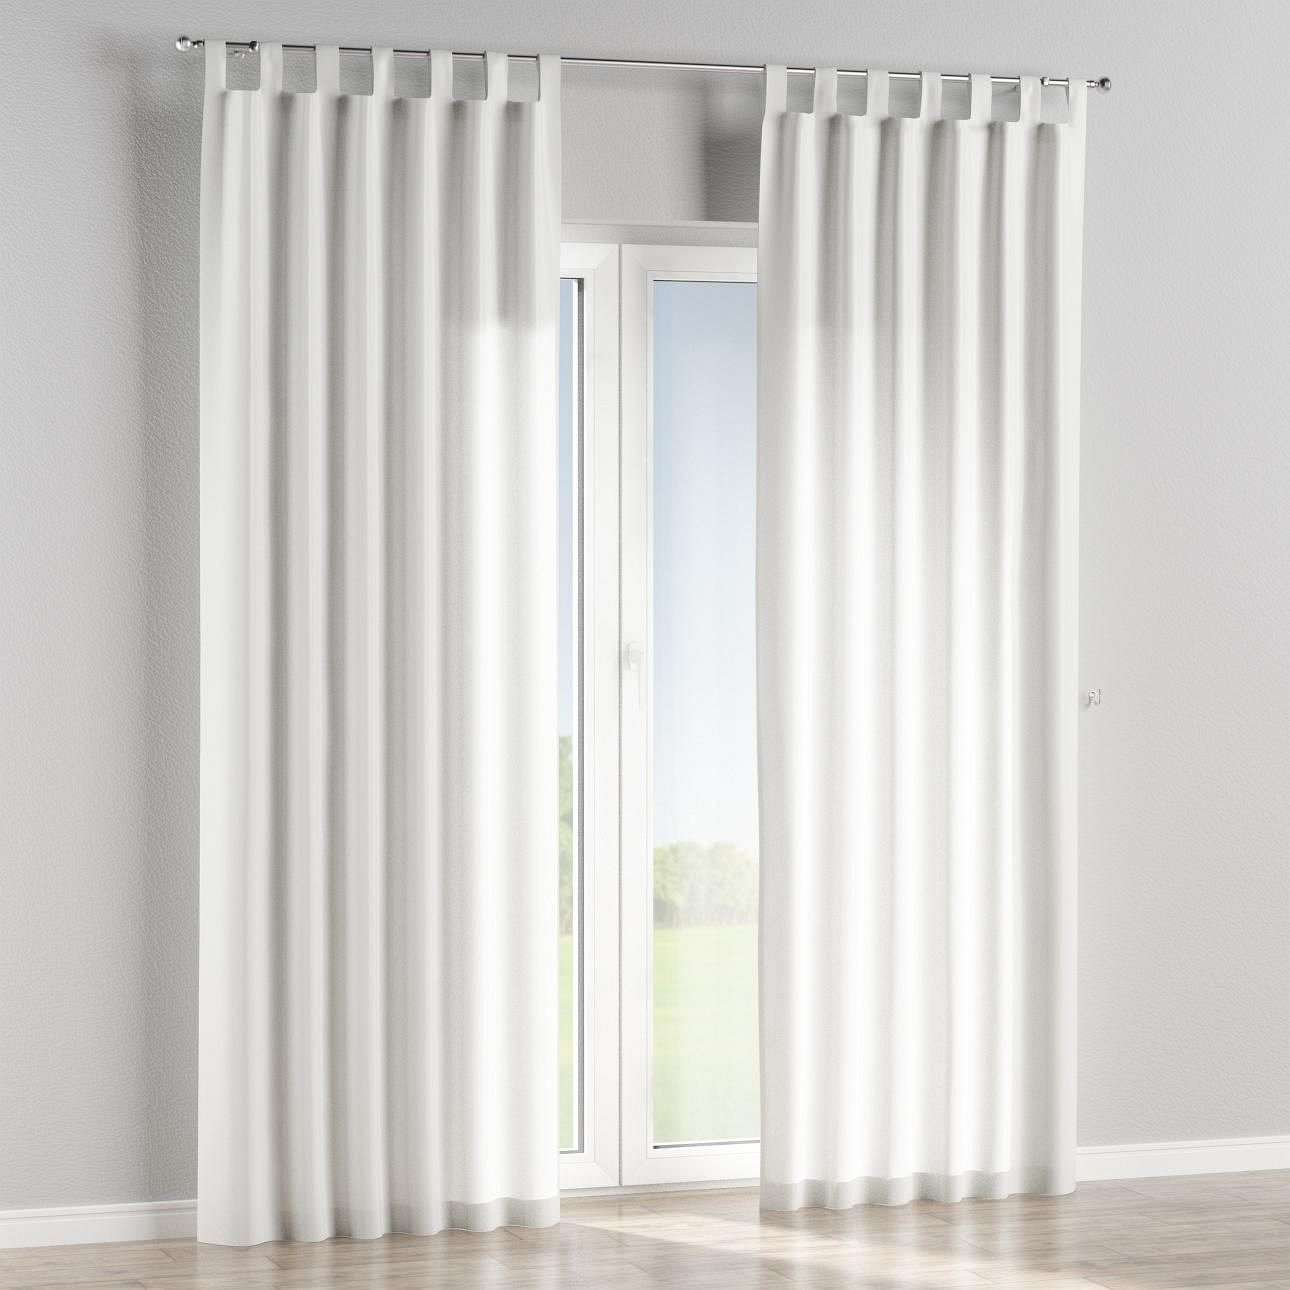 Tab top lined curtains in collection Ashley, fabric: 137-46